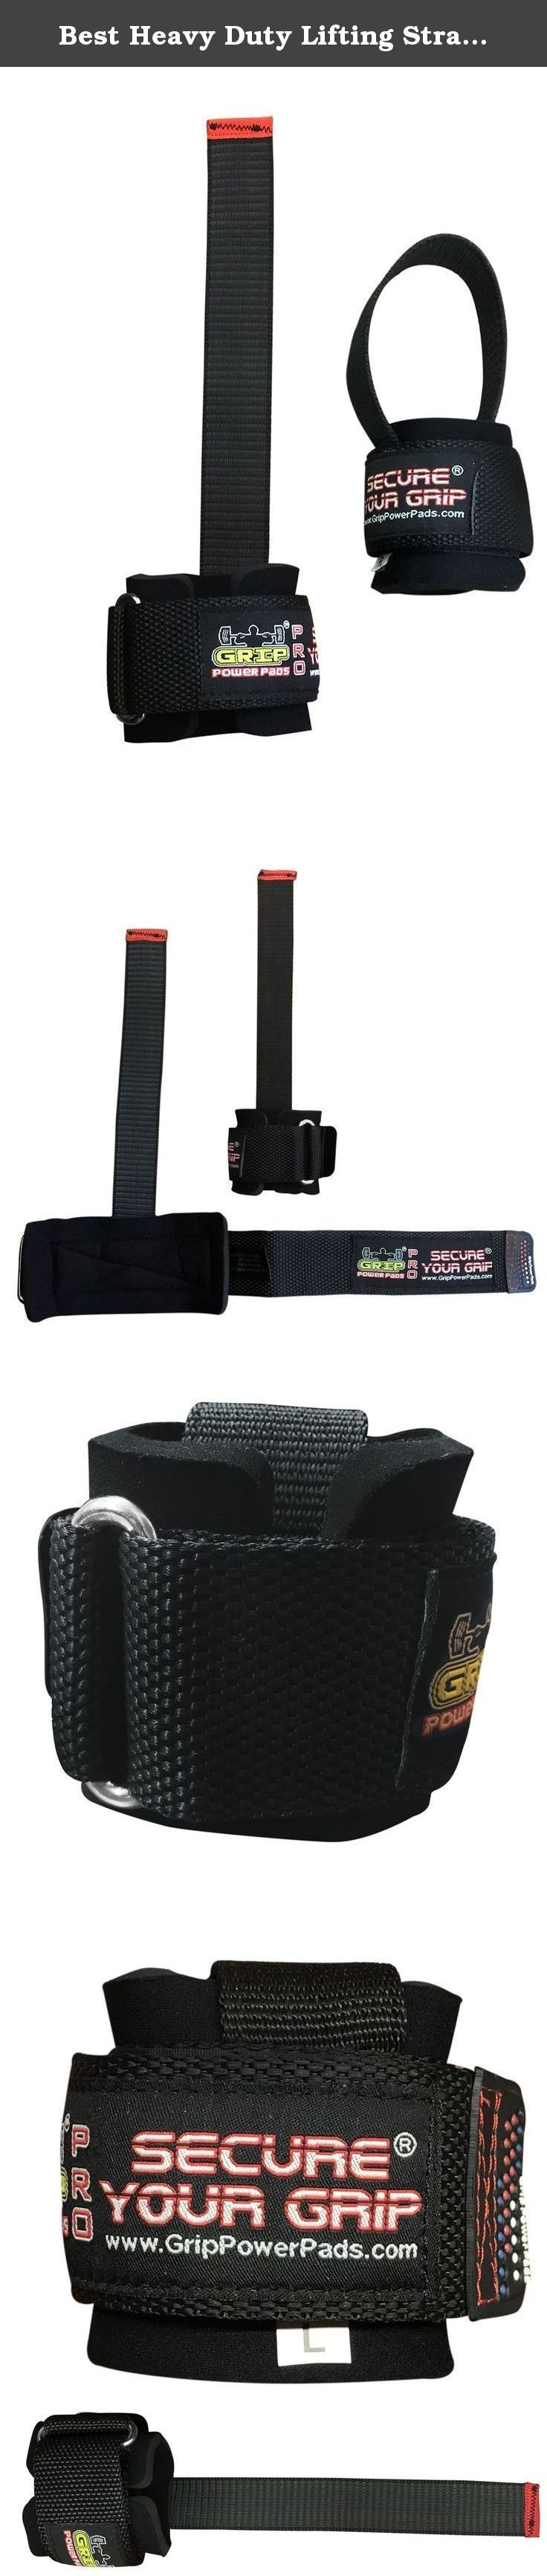 Best Heavy Duty Lifting Straps Neoprene Padded 1 Pair Wrist Wraps & Rubbery Grip Support Straps with Cotton Coated Rubber on One Side (Rubber Side Face The Bar). Padded weight lifting straps for enhanced Grip and wrist support. With Inner cushion padding to protect wrist while training. The Straps padding cushion must be facing the bar while lifting. Great for general weight lifting or power lifting use. One size fits all and come as pair.